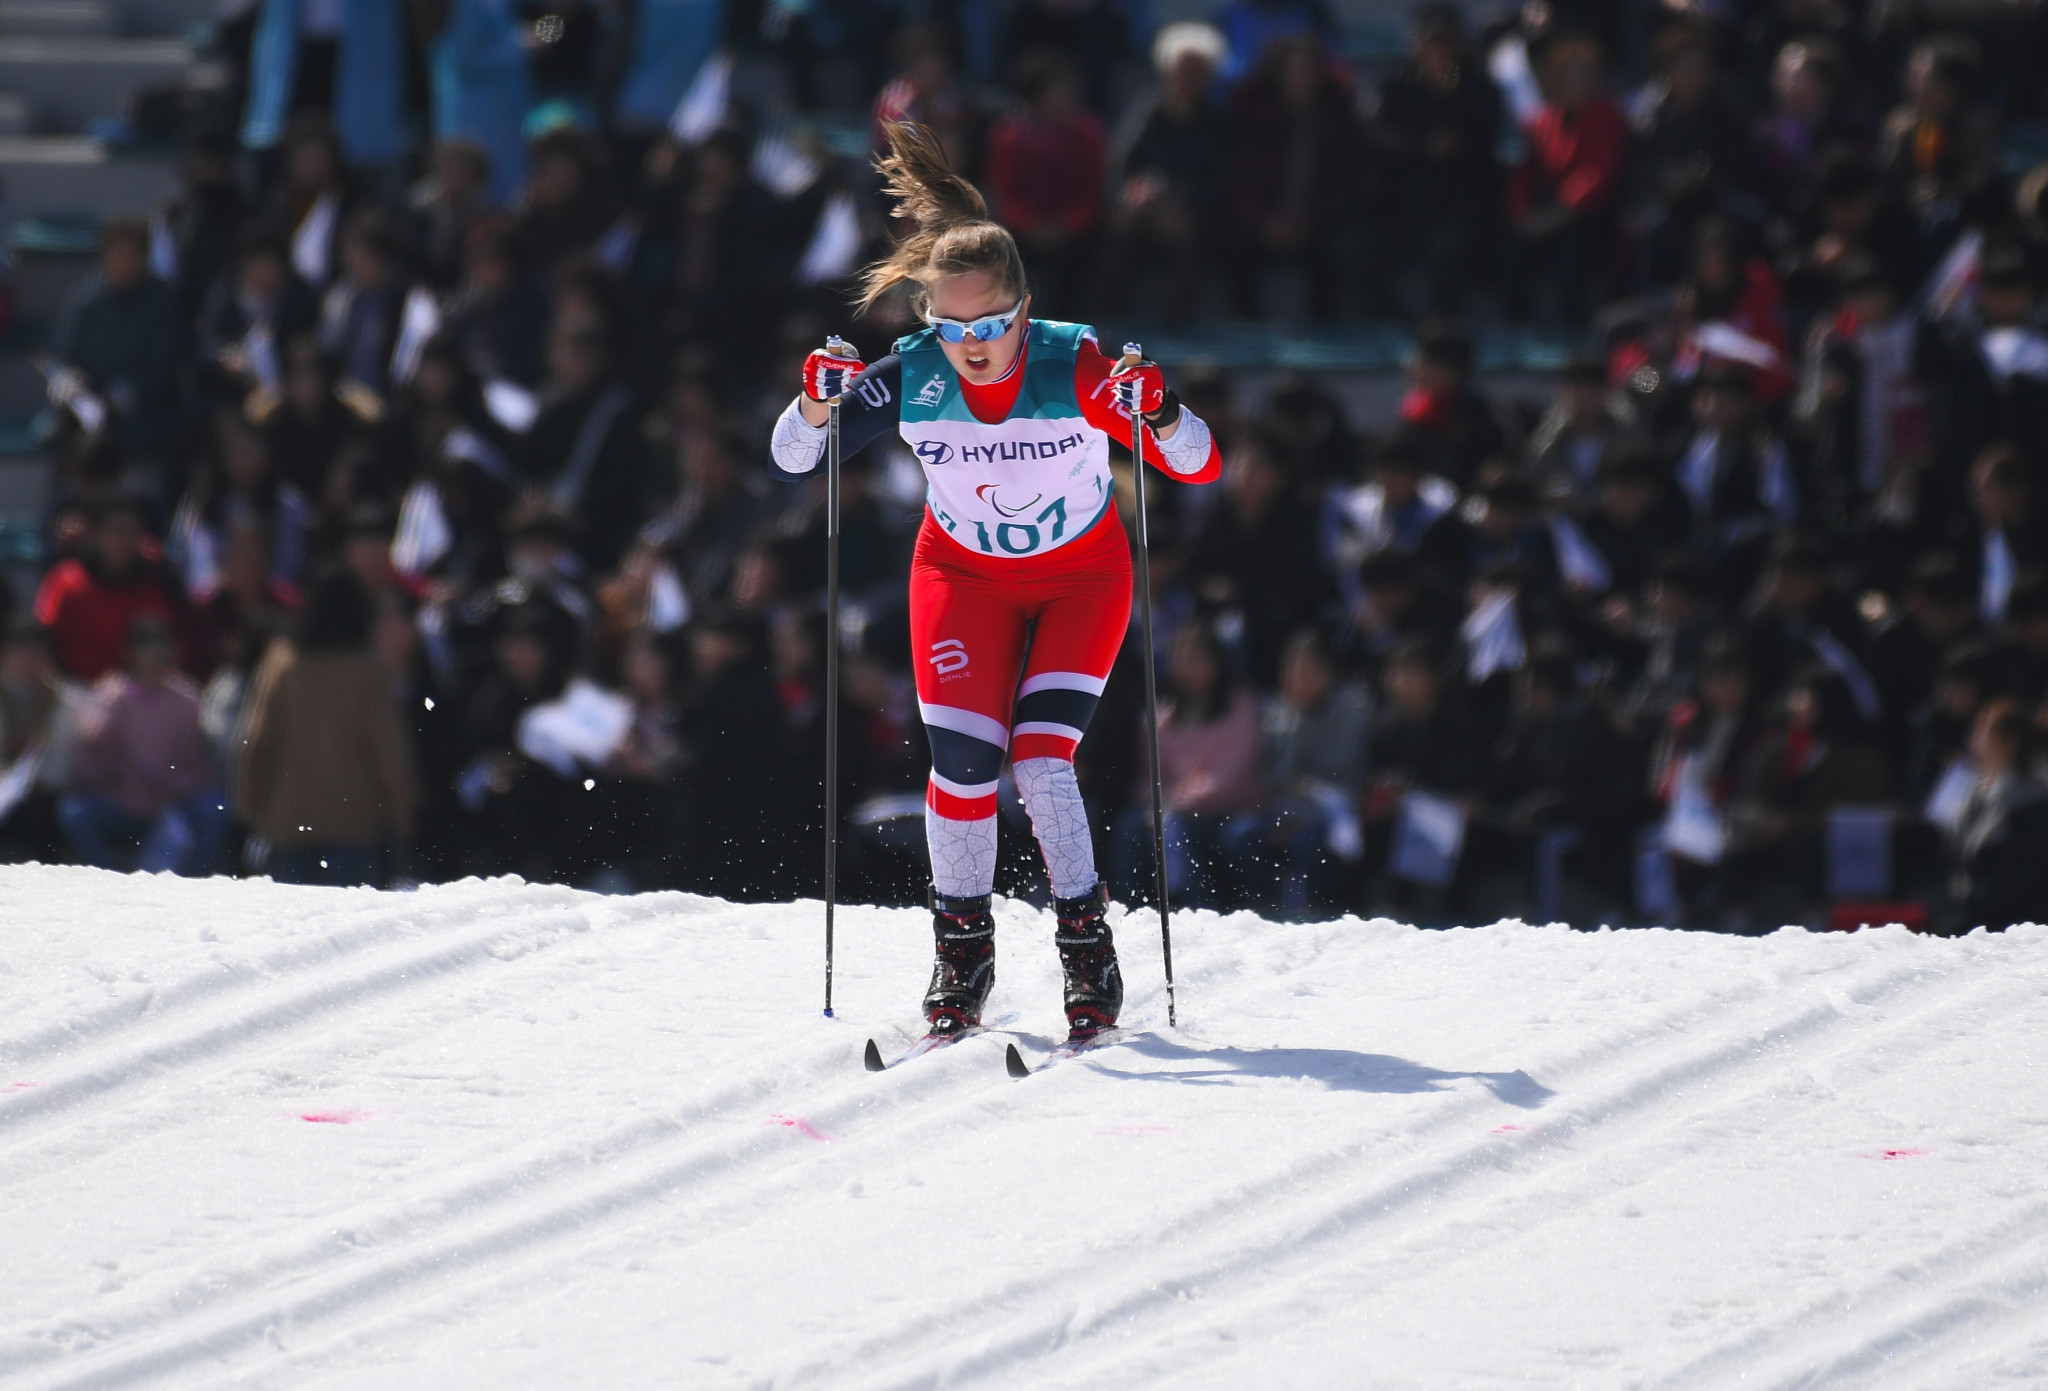 Vilde Nilsen came second after winning all three women's cross-country races at the Para Nordic Skiing World Cup in Vuokatti in Finland ©Getty Images